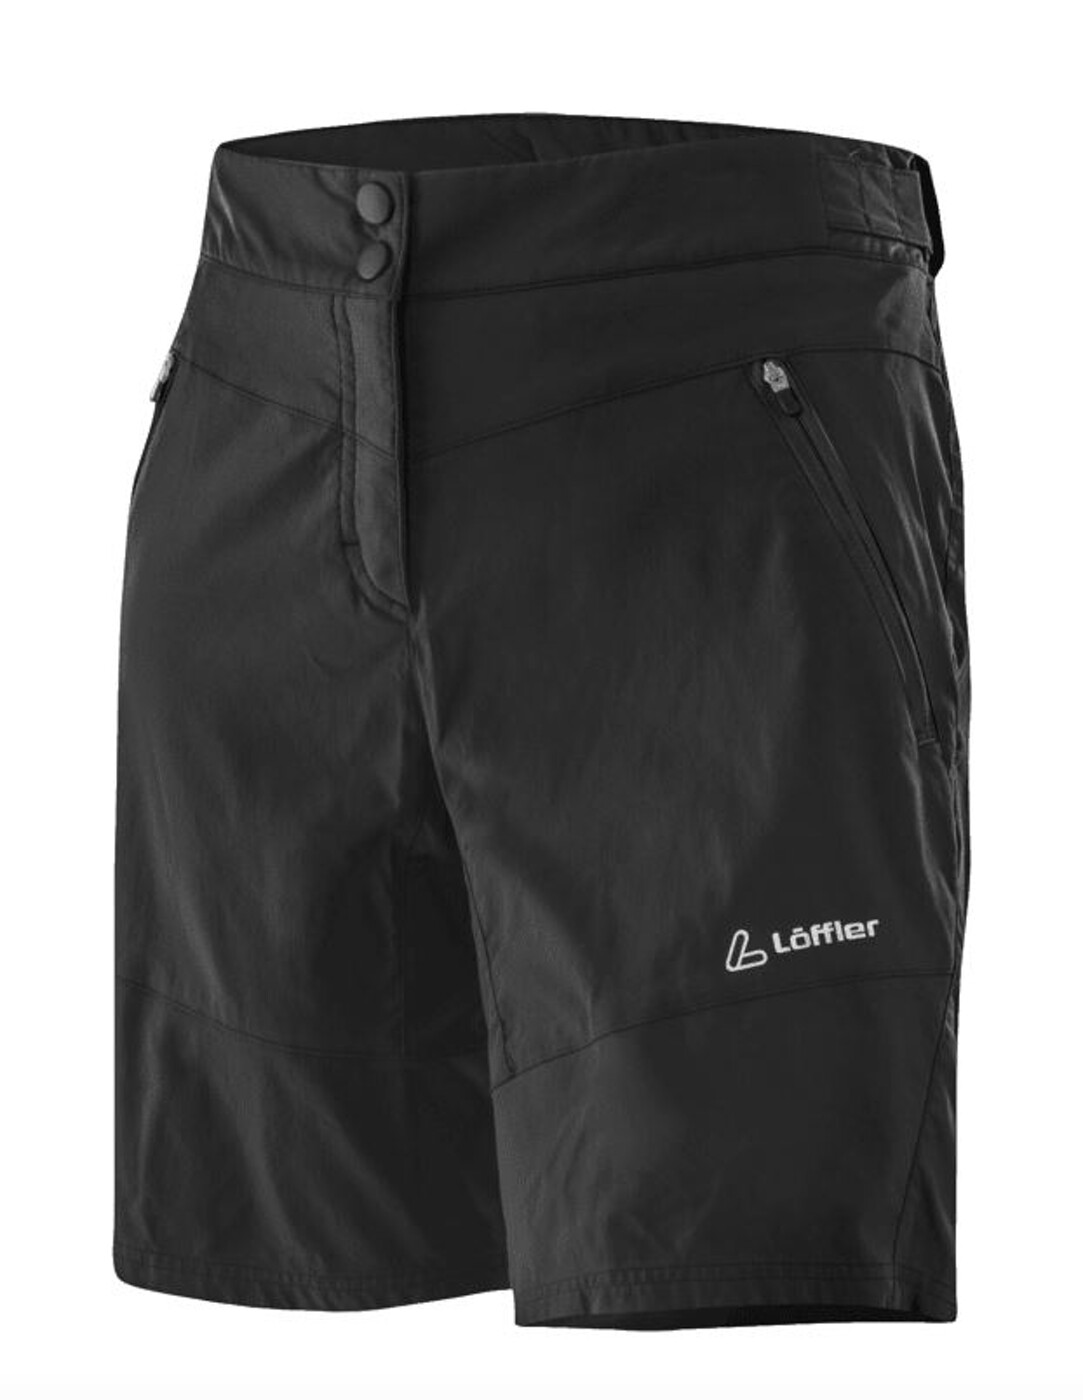 LÖFFLER W BIKE SHORTS EVO CSL - Damen